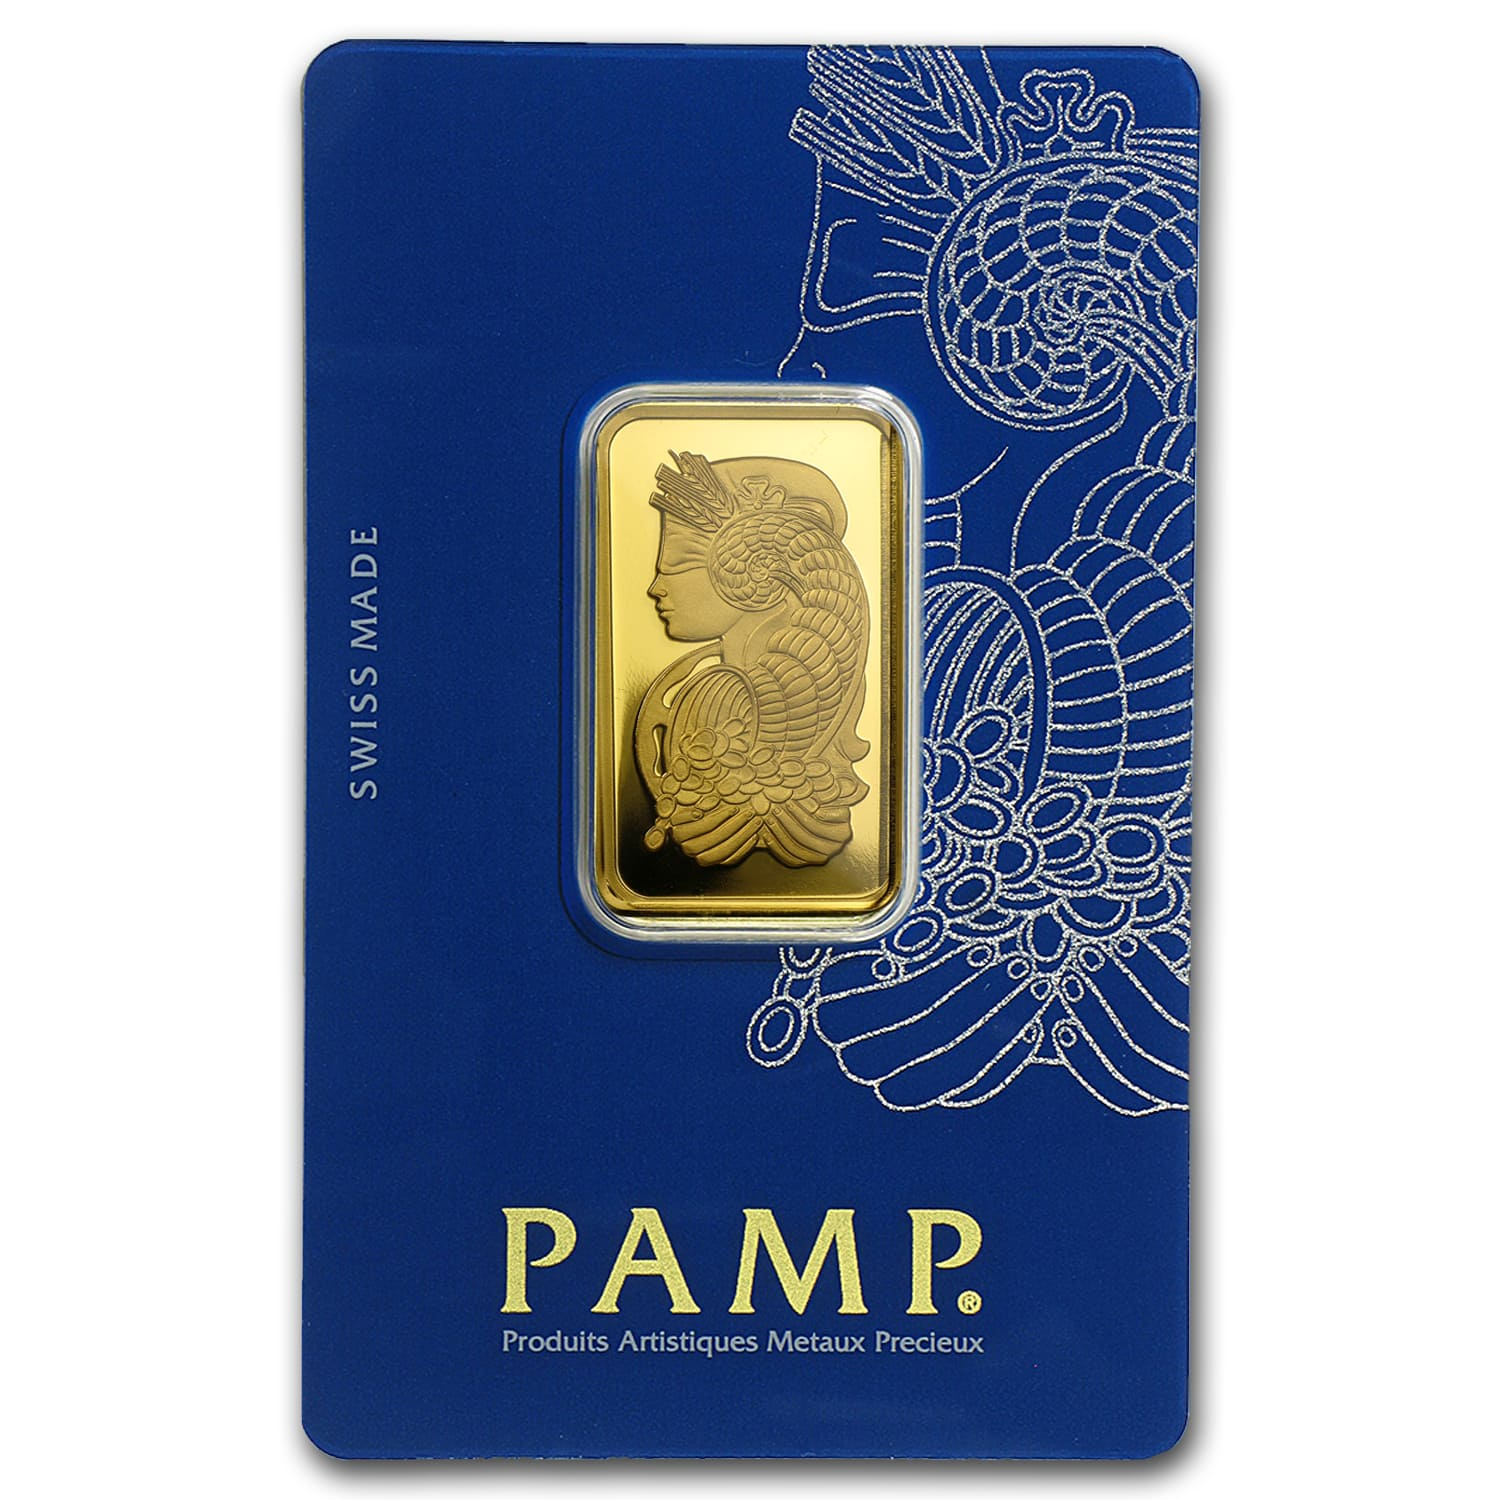 20 gram Gold Bar - PAMP Suisse Fortuna Veriscan in Assay